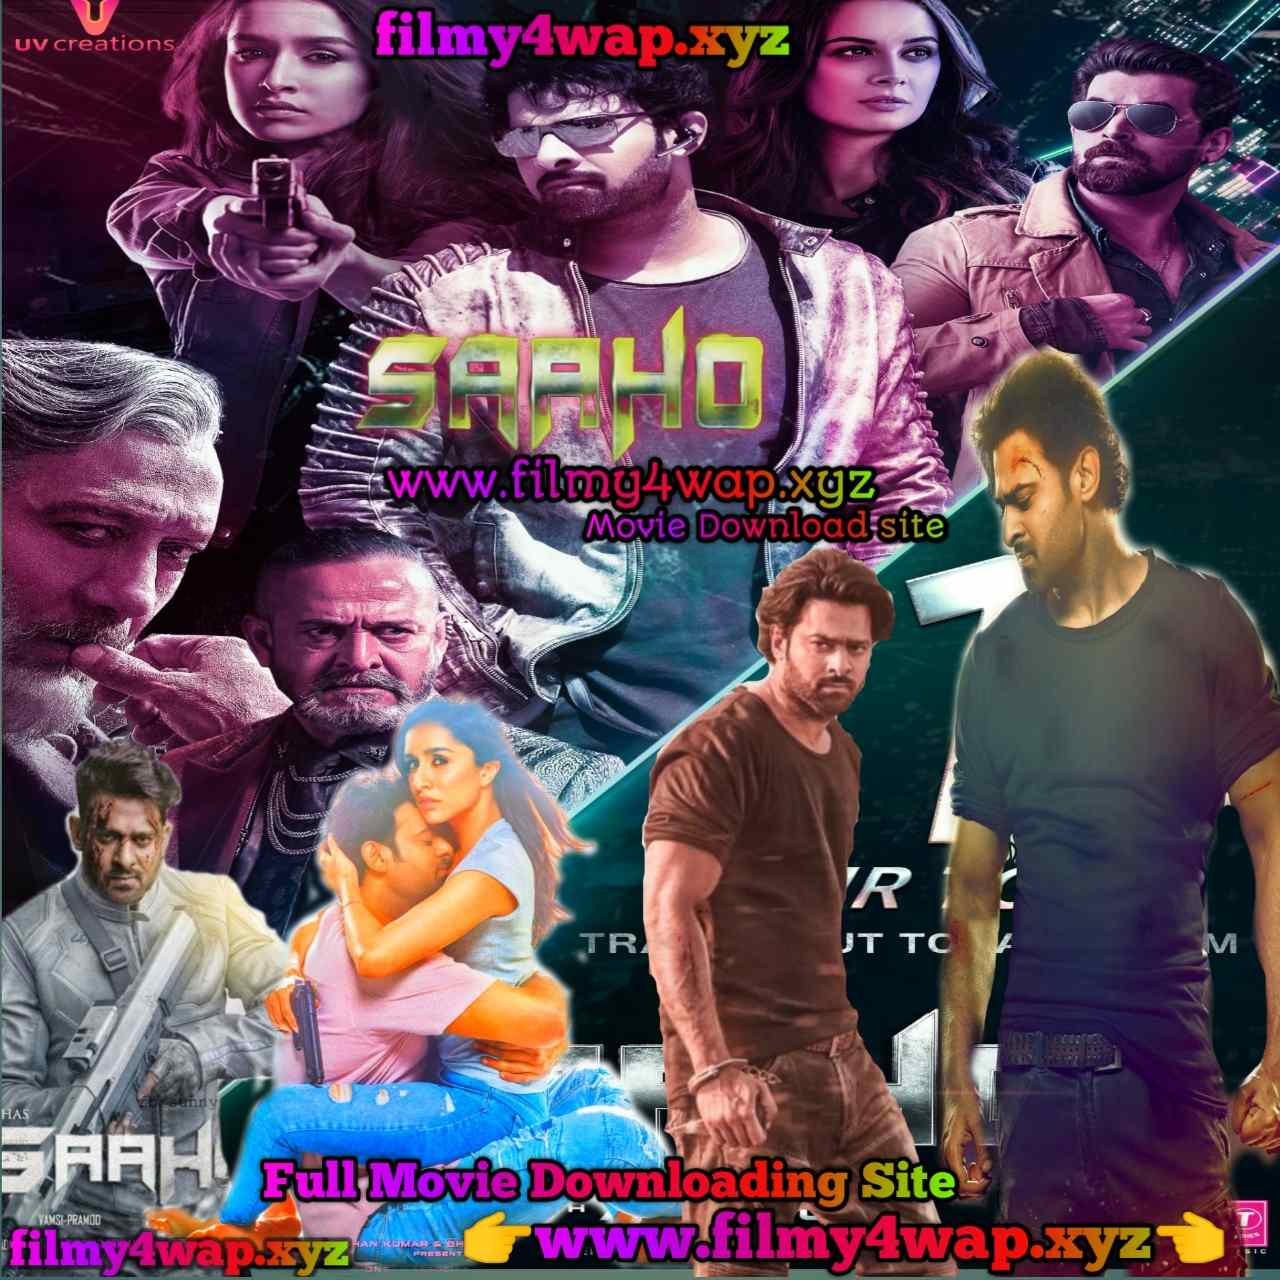 saaho-2019-movie-posters-information